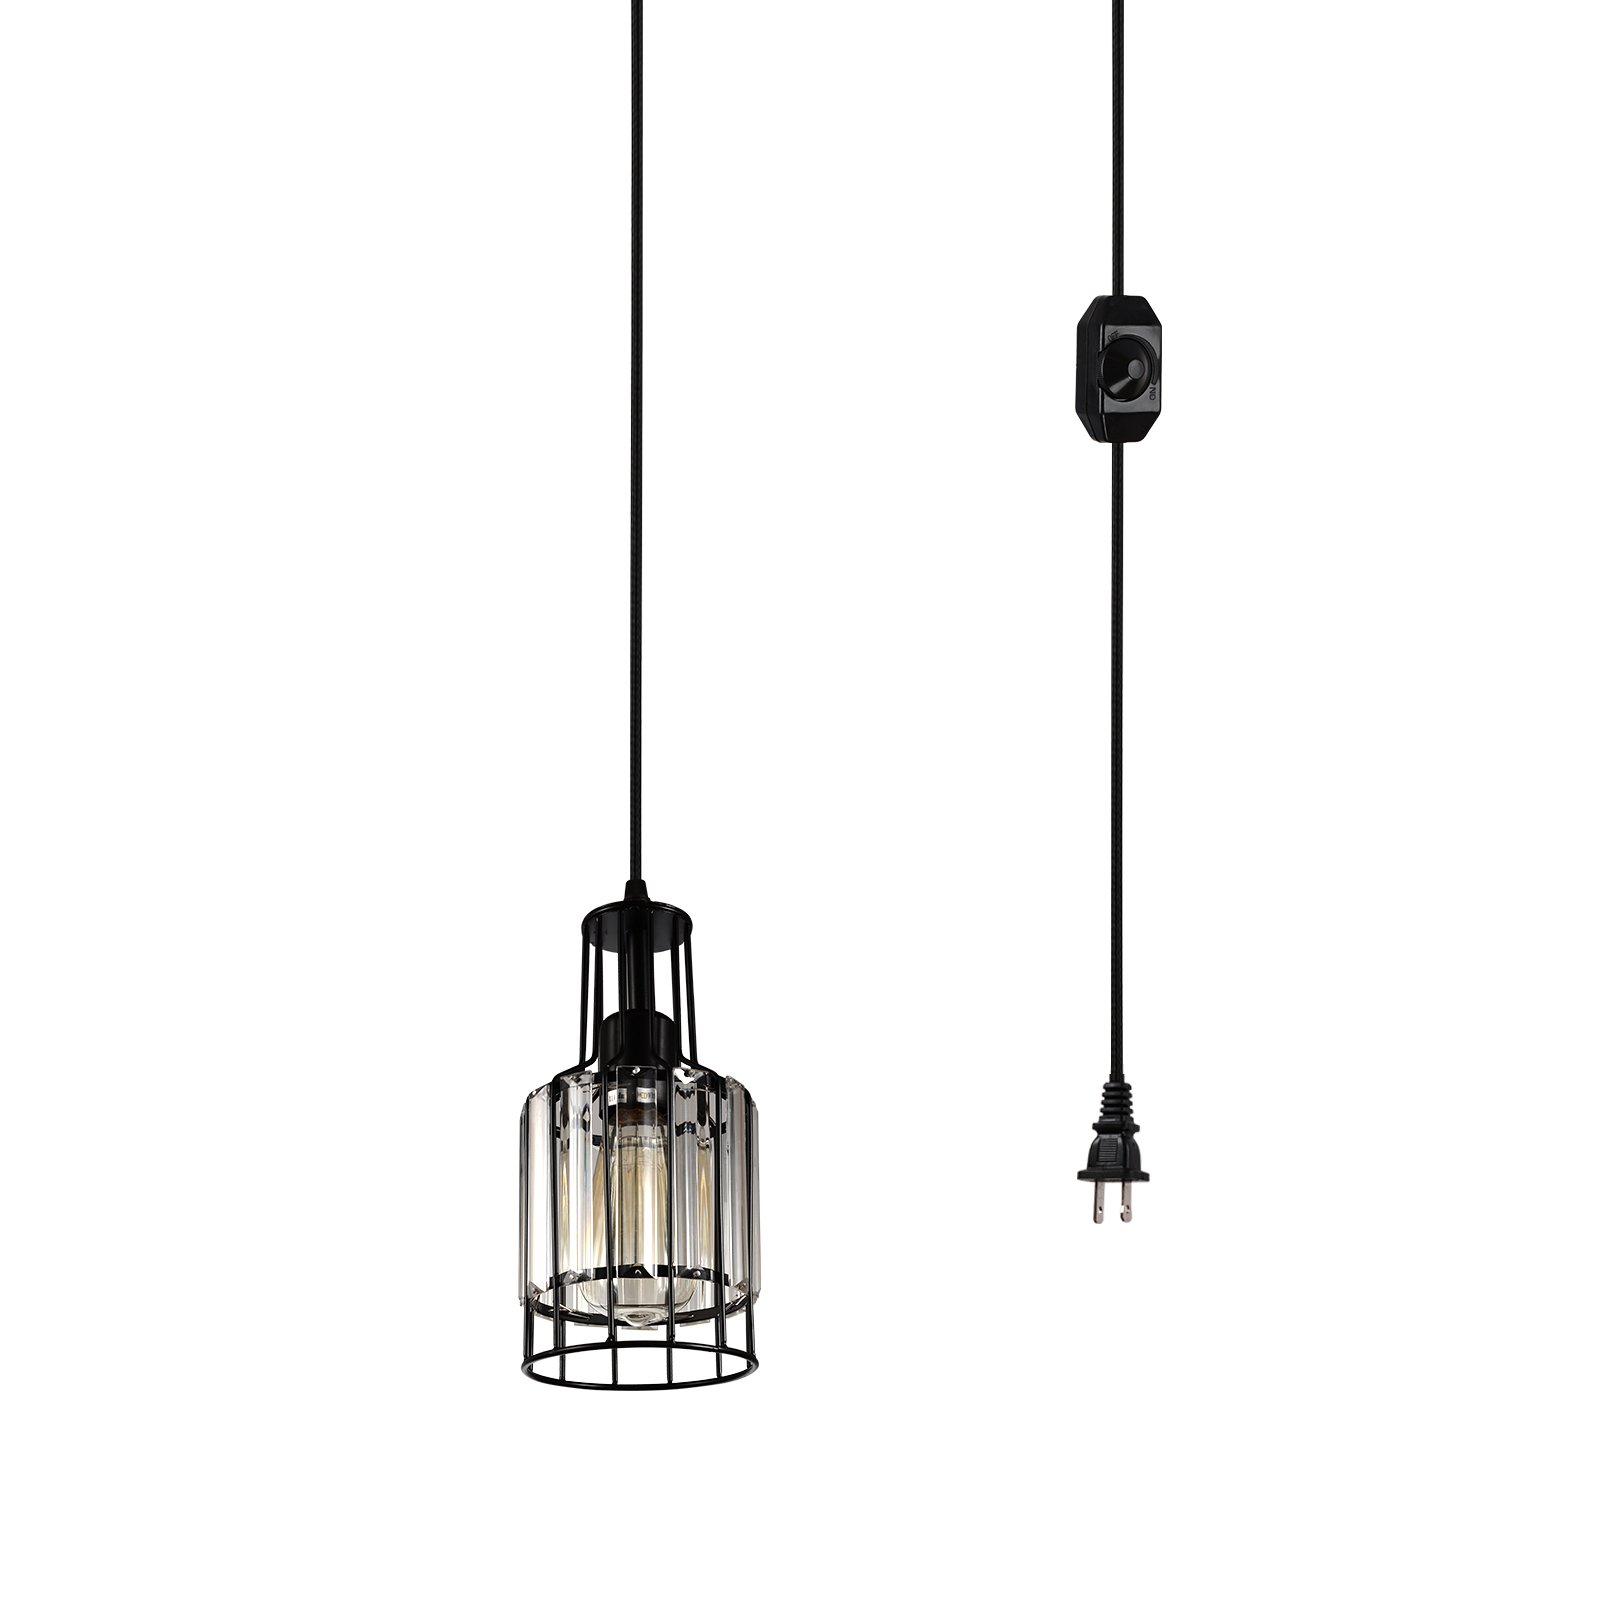 plug in hanging light ceiling lamp vintage portable modern pendant rh ebay co uk Portable Light Switch Portable Light Towers